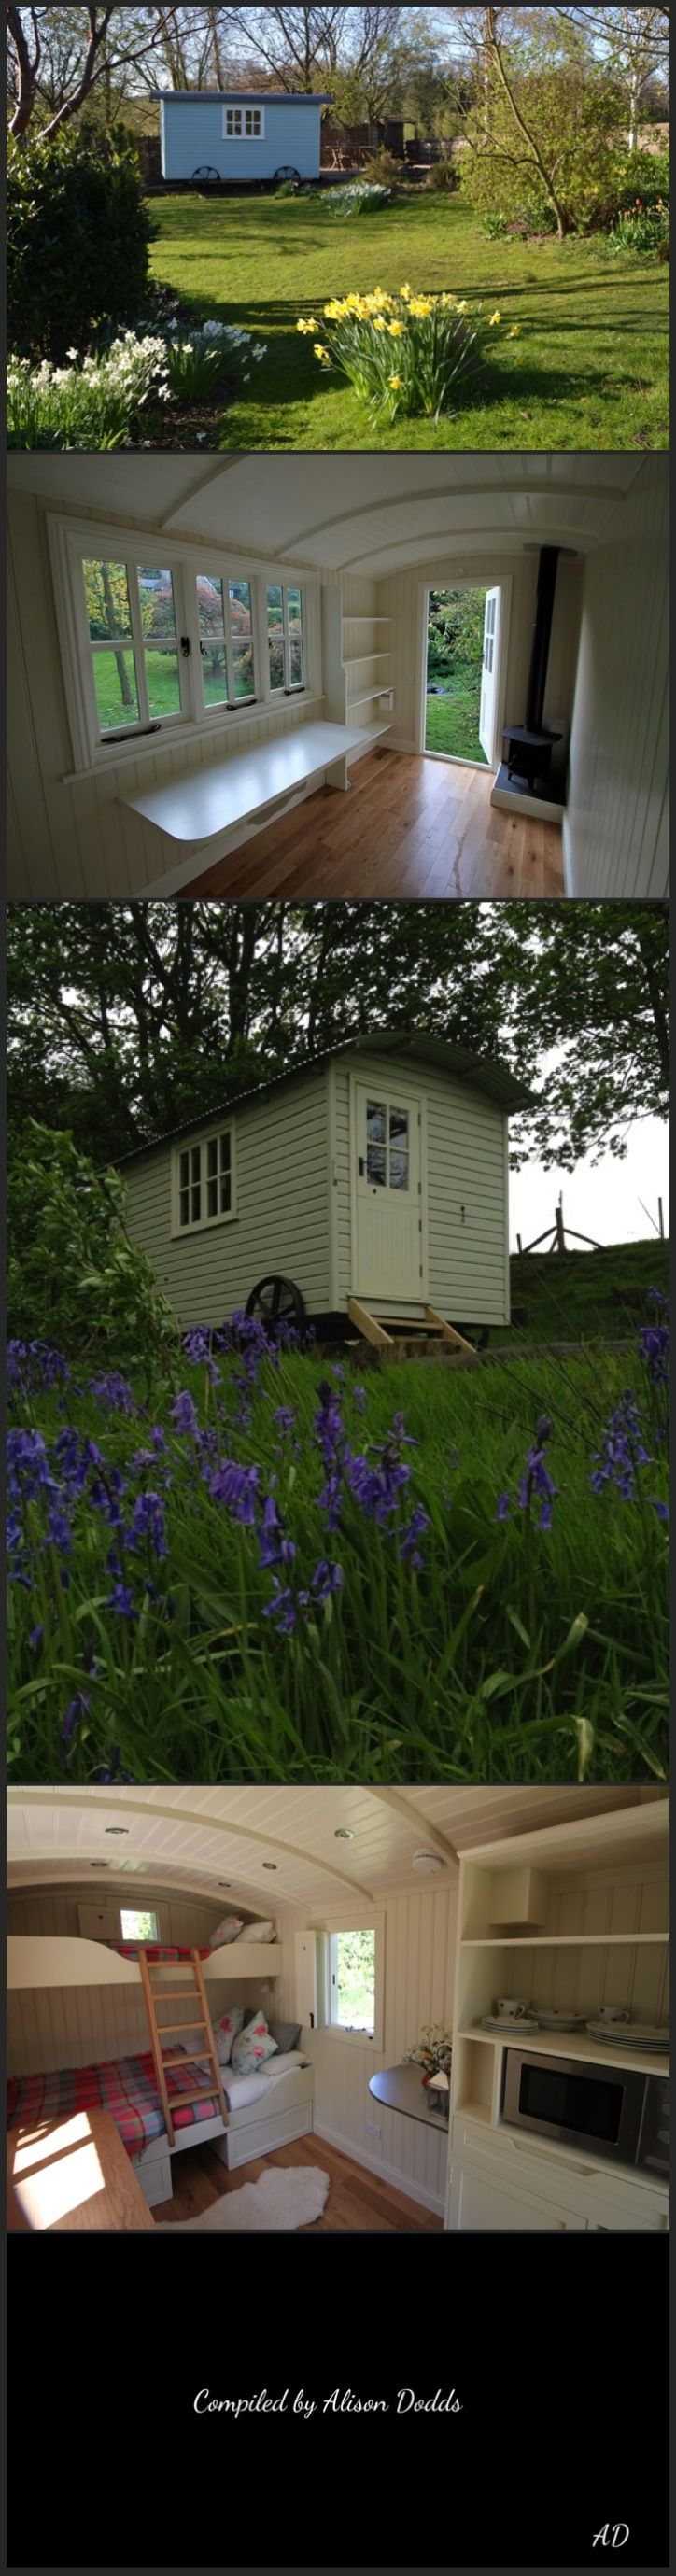 Shepherd's Huts.........by the Yorkshire hut company painted in any FB colour. www.Facebook.com/alison.dodds.39